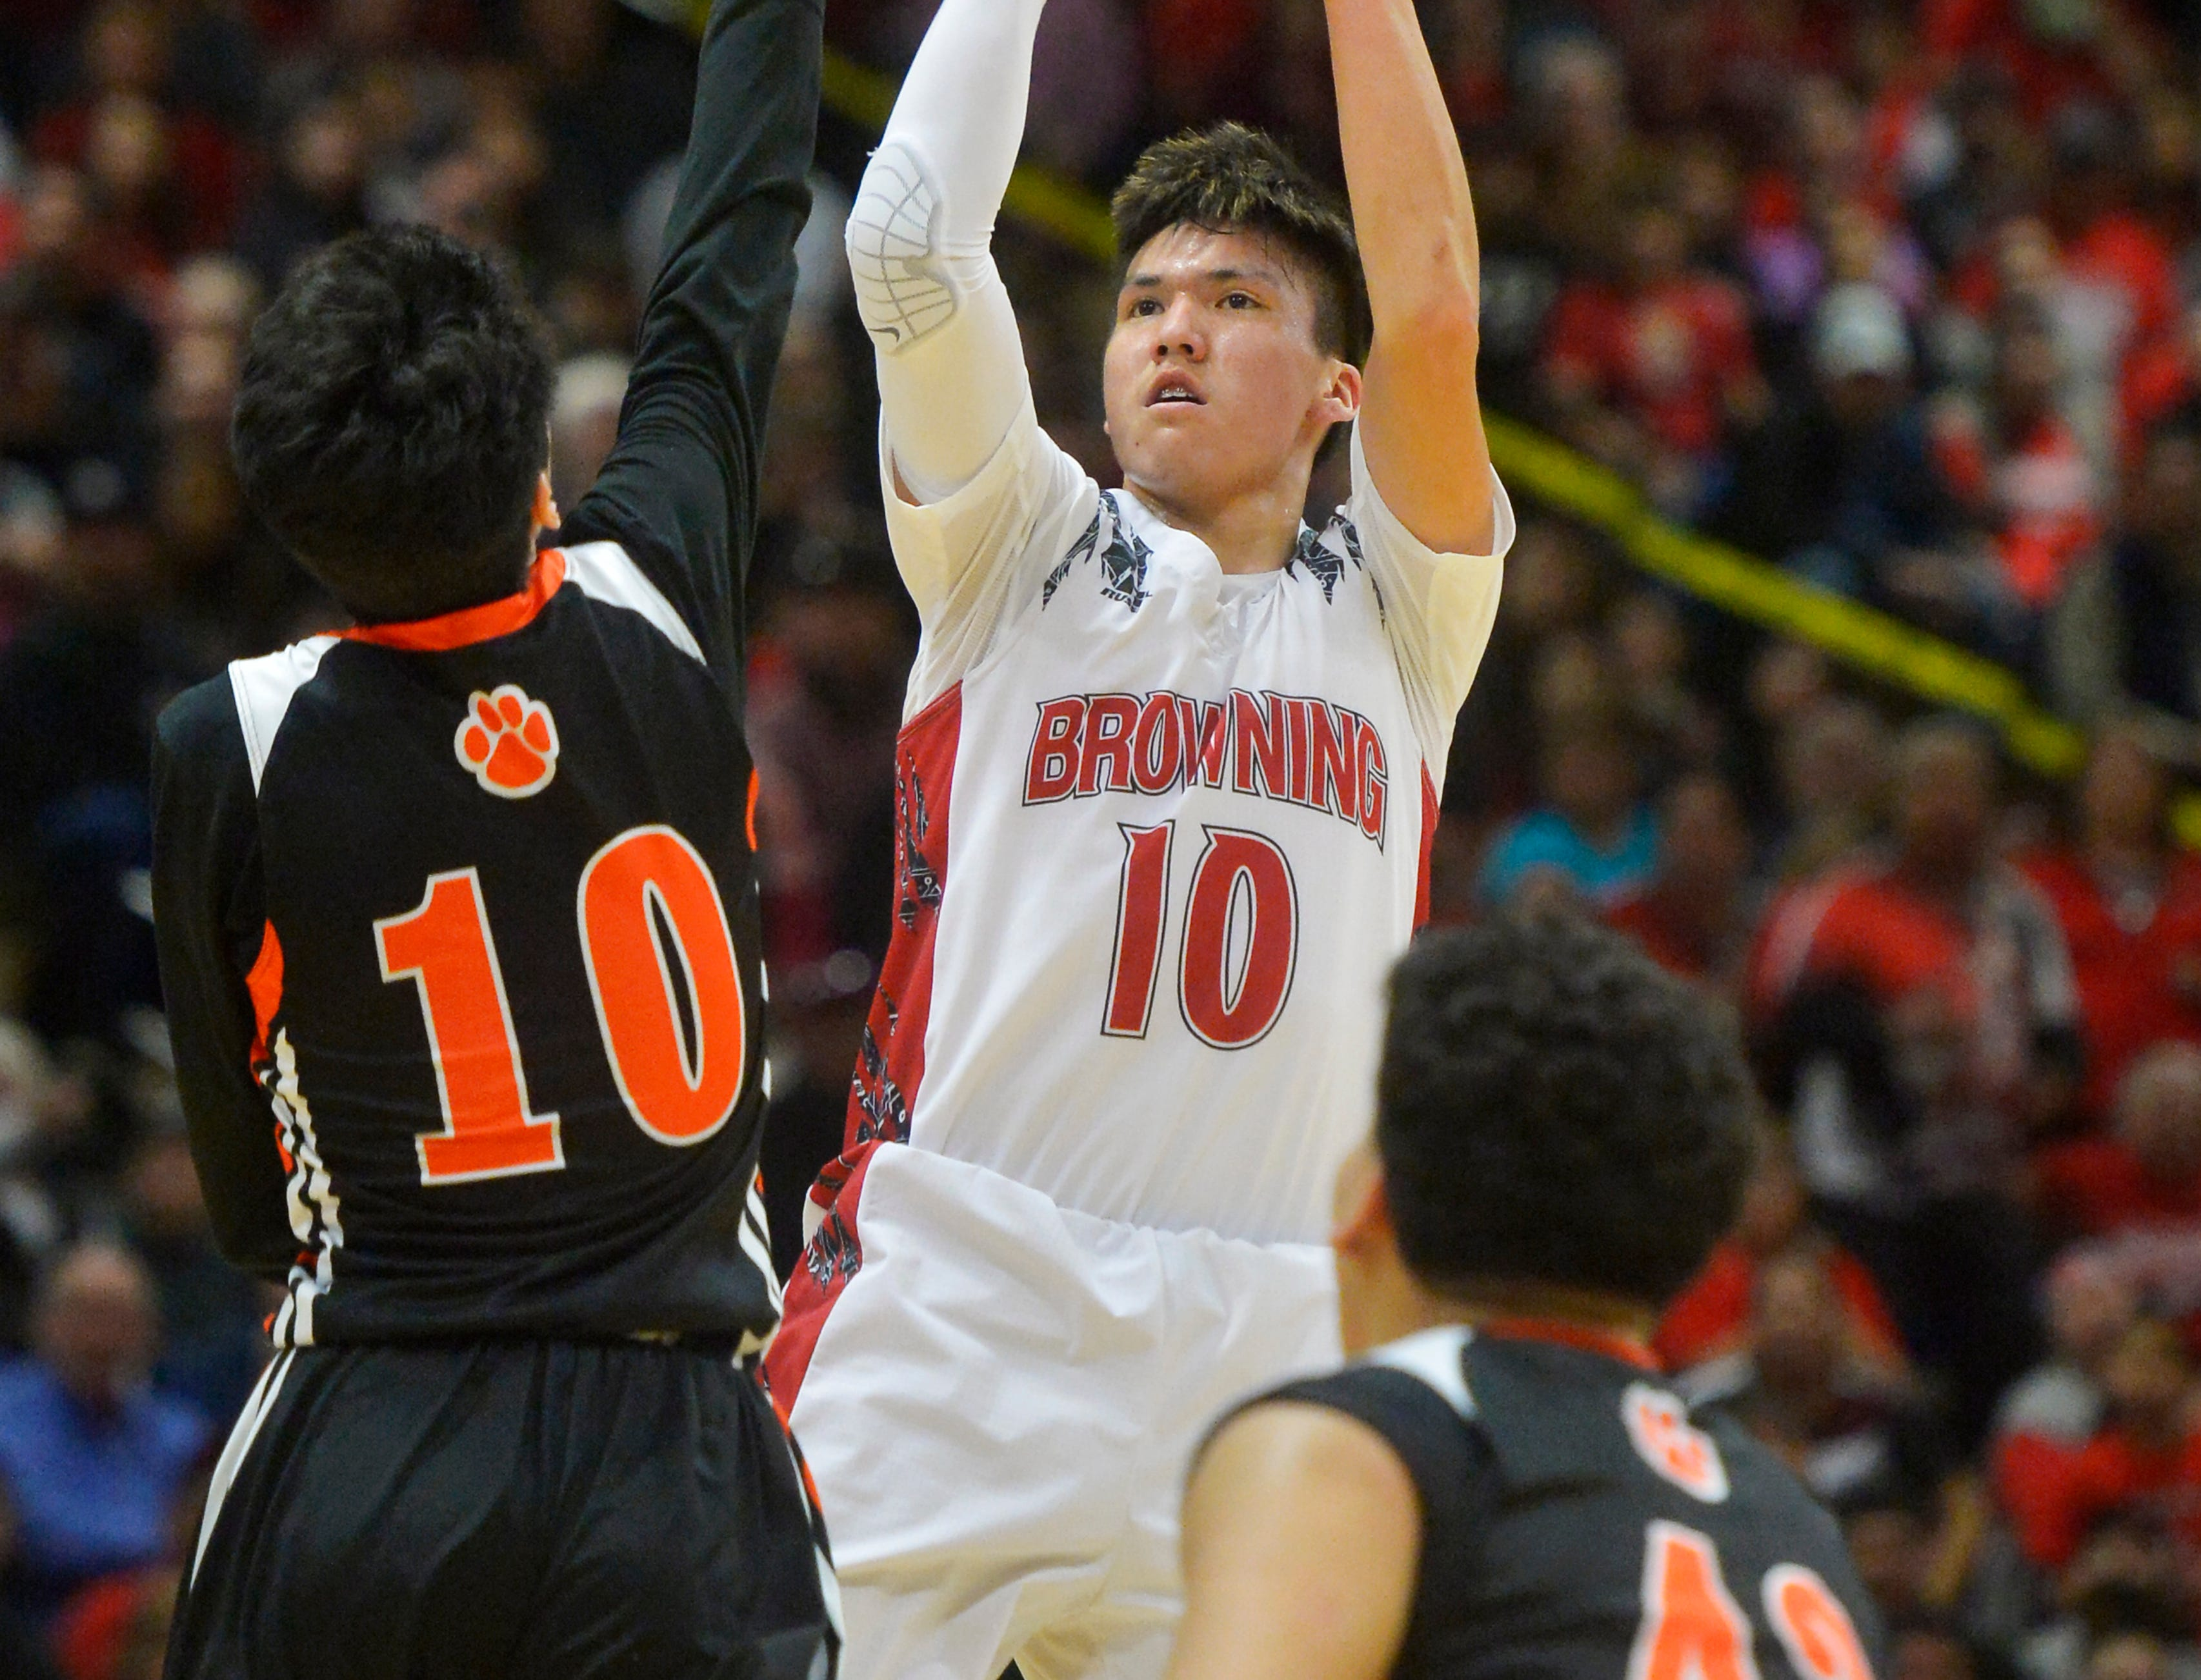 Browning's Riley Spoonhunter attempts a shot in Thursday's game against Hardin during the Class A State Basketball Tournament in the Four Seasons Arena.